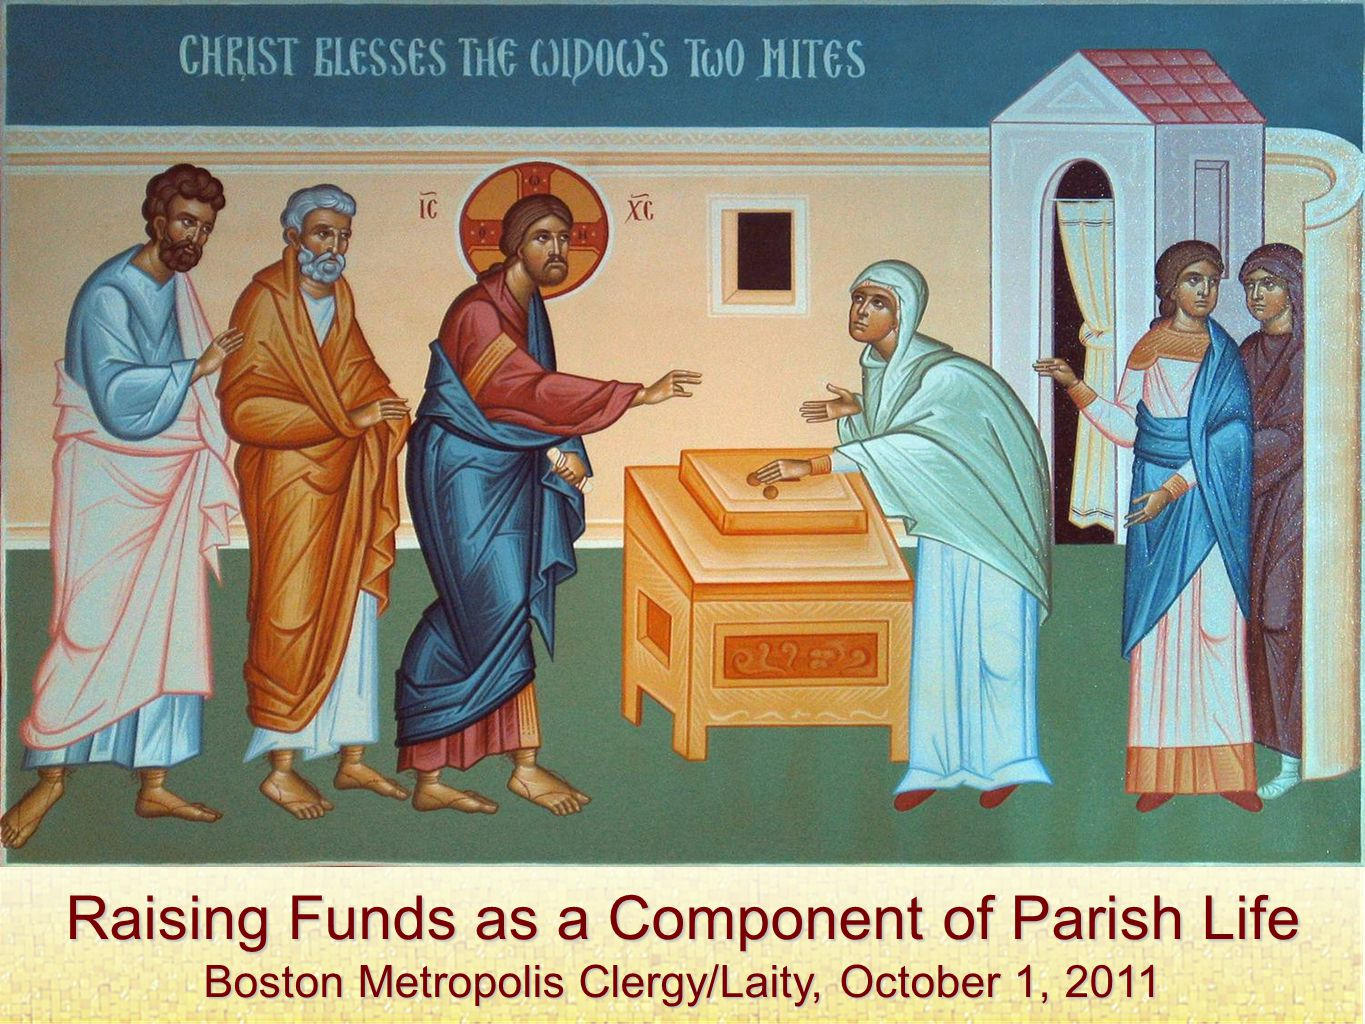 Raising Funds as a Component of Parish Life Boston Metropolis Clergy/Laity, October 1, 2011